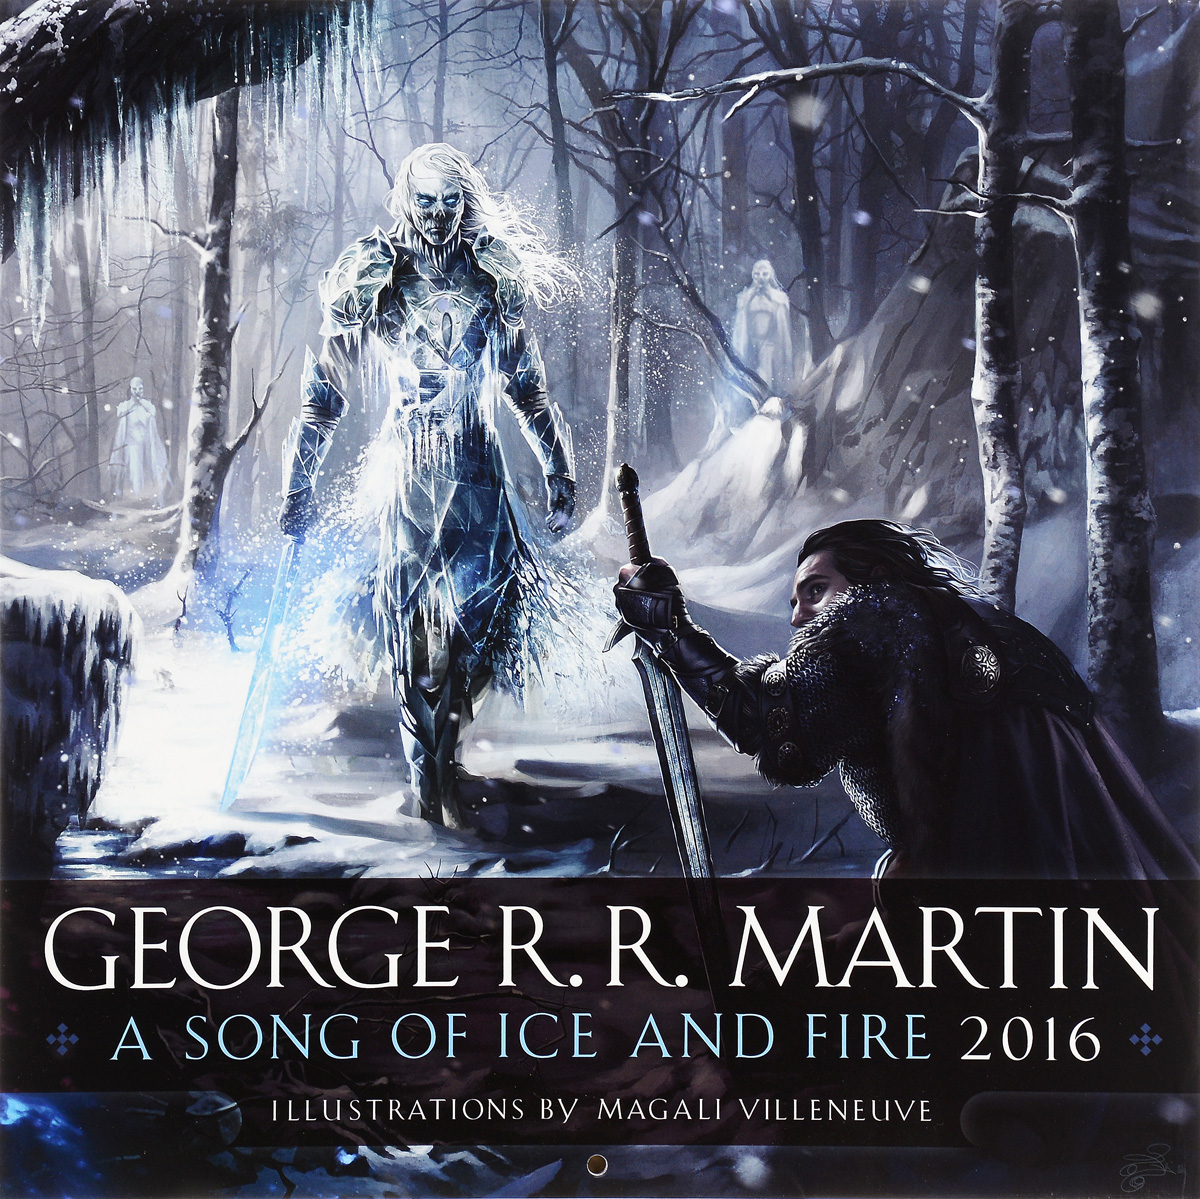 SONG OF ICE AND FIRE 2016 a song of ice and fire комплект из 7 книг карта